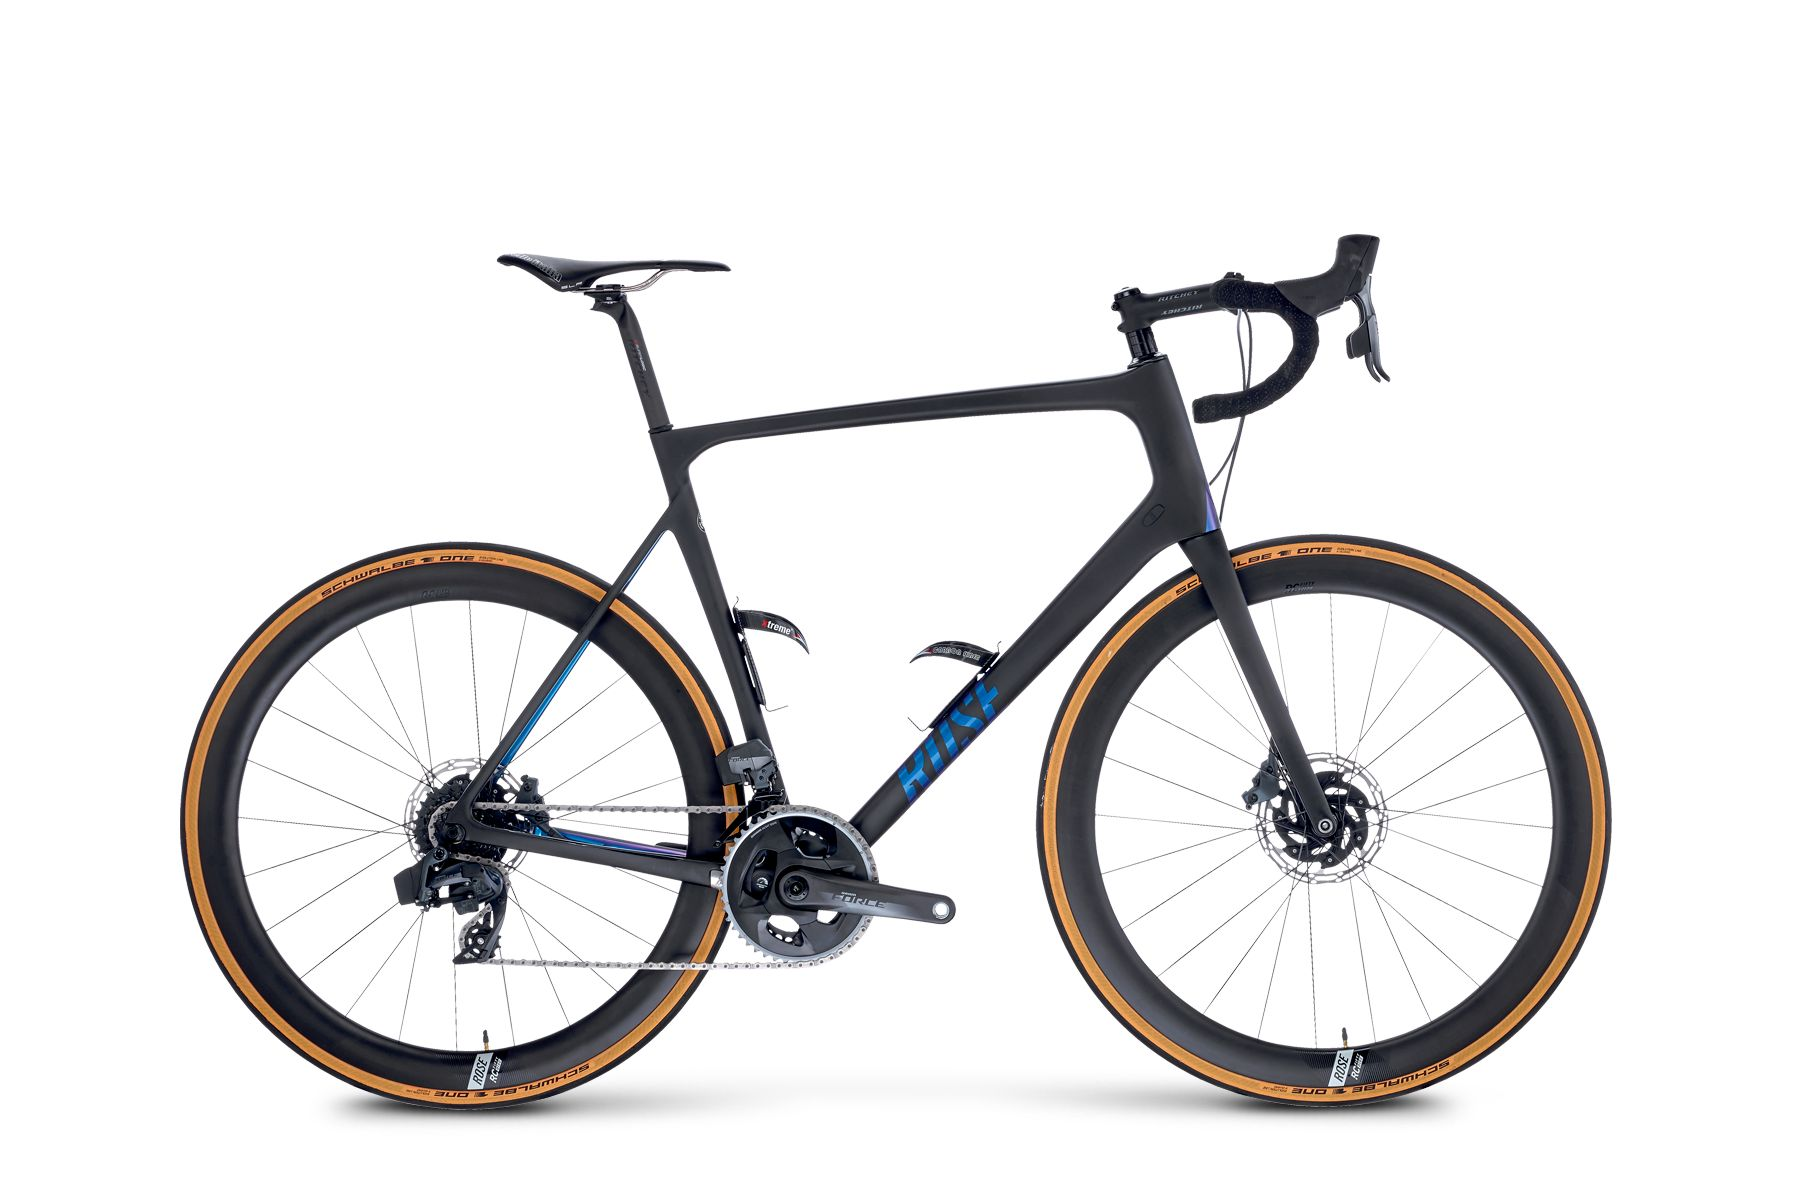 X-LITE SIX DISC Force eTap AXS Ex Demo Bike Size: 62cm